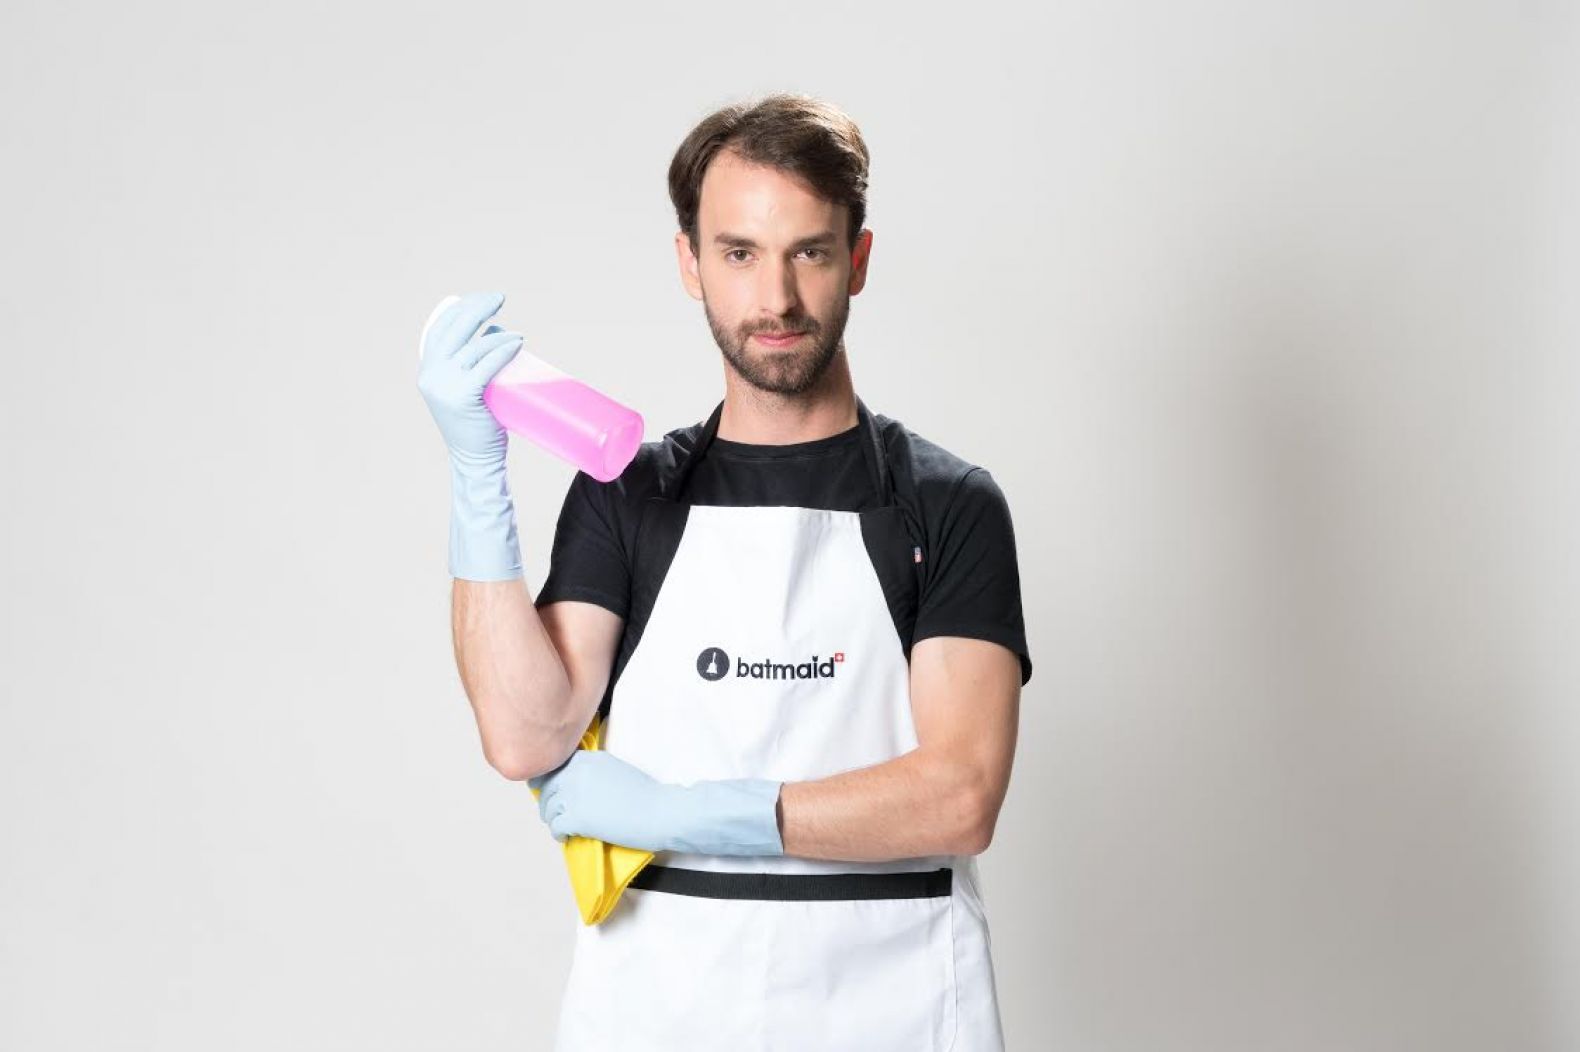 Batmaid personnel masculin